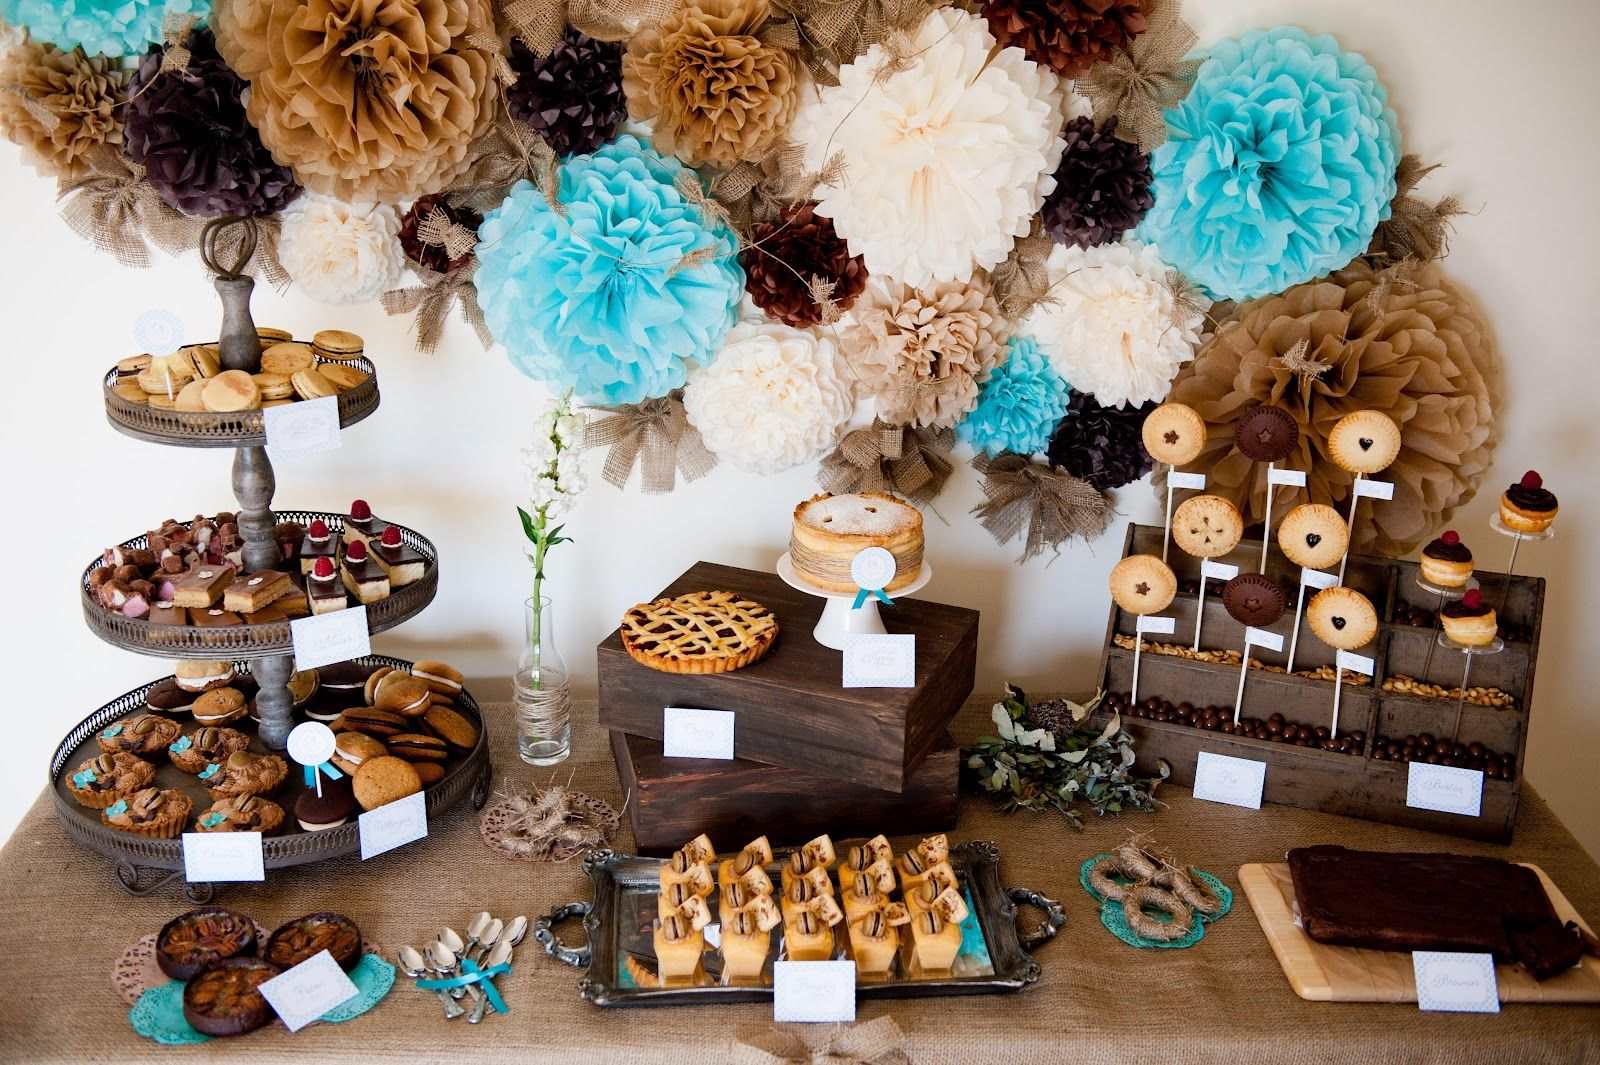 Sweet amp sparkly wedding candy buffet pictures to pin on pinterest - Bubble And Sweet Oh Sweet Mum A Rustic Pie Buffet Party Table Dessert Buffet